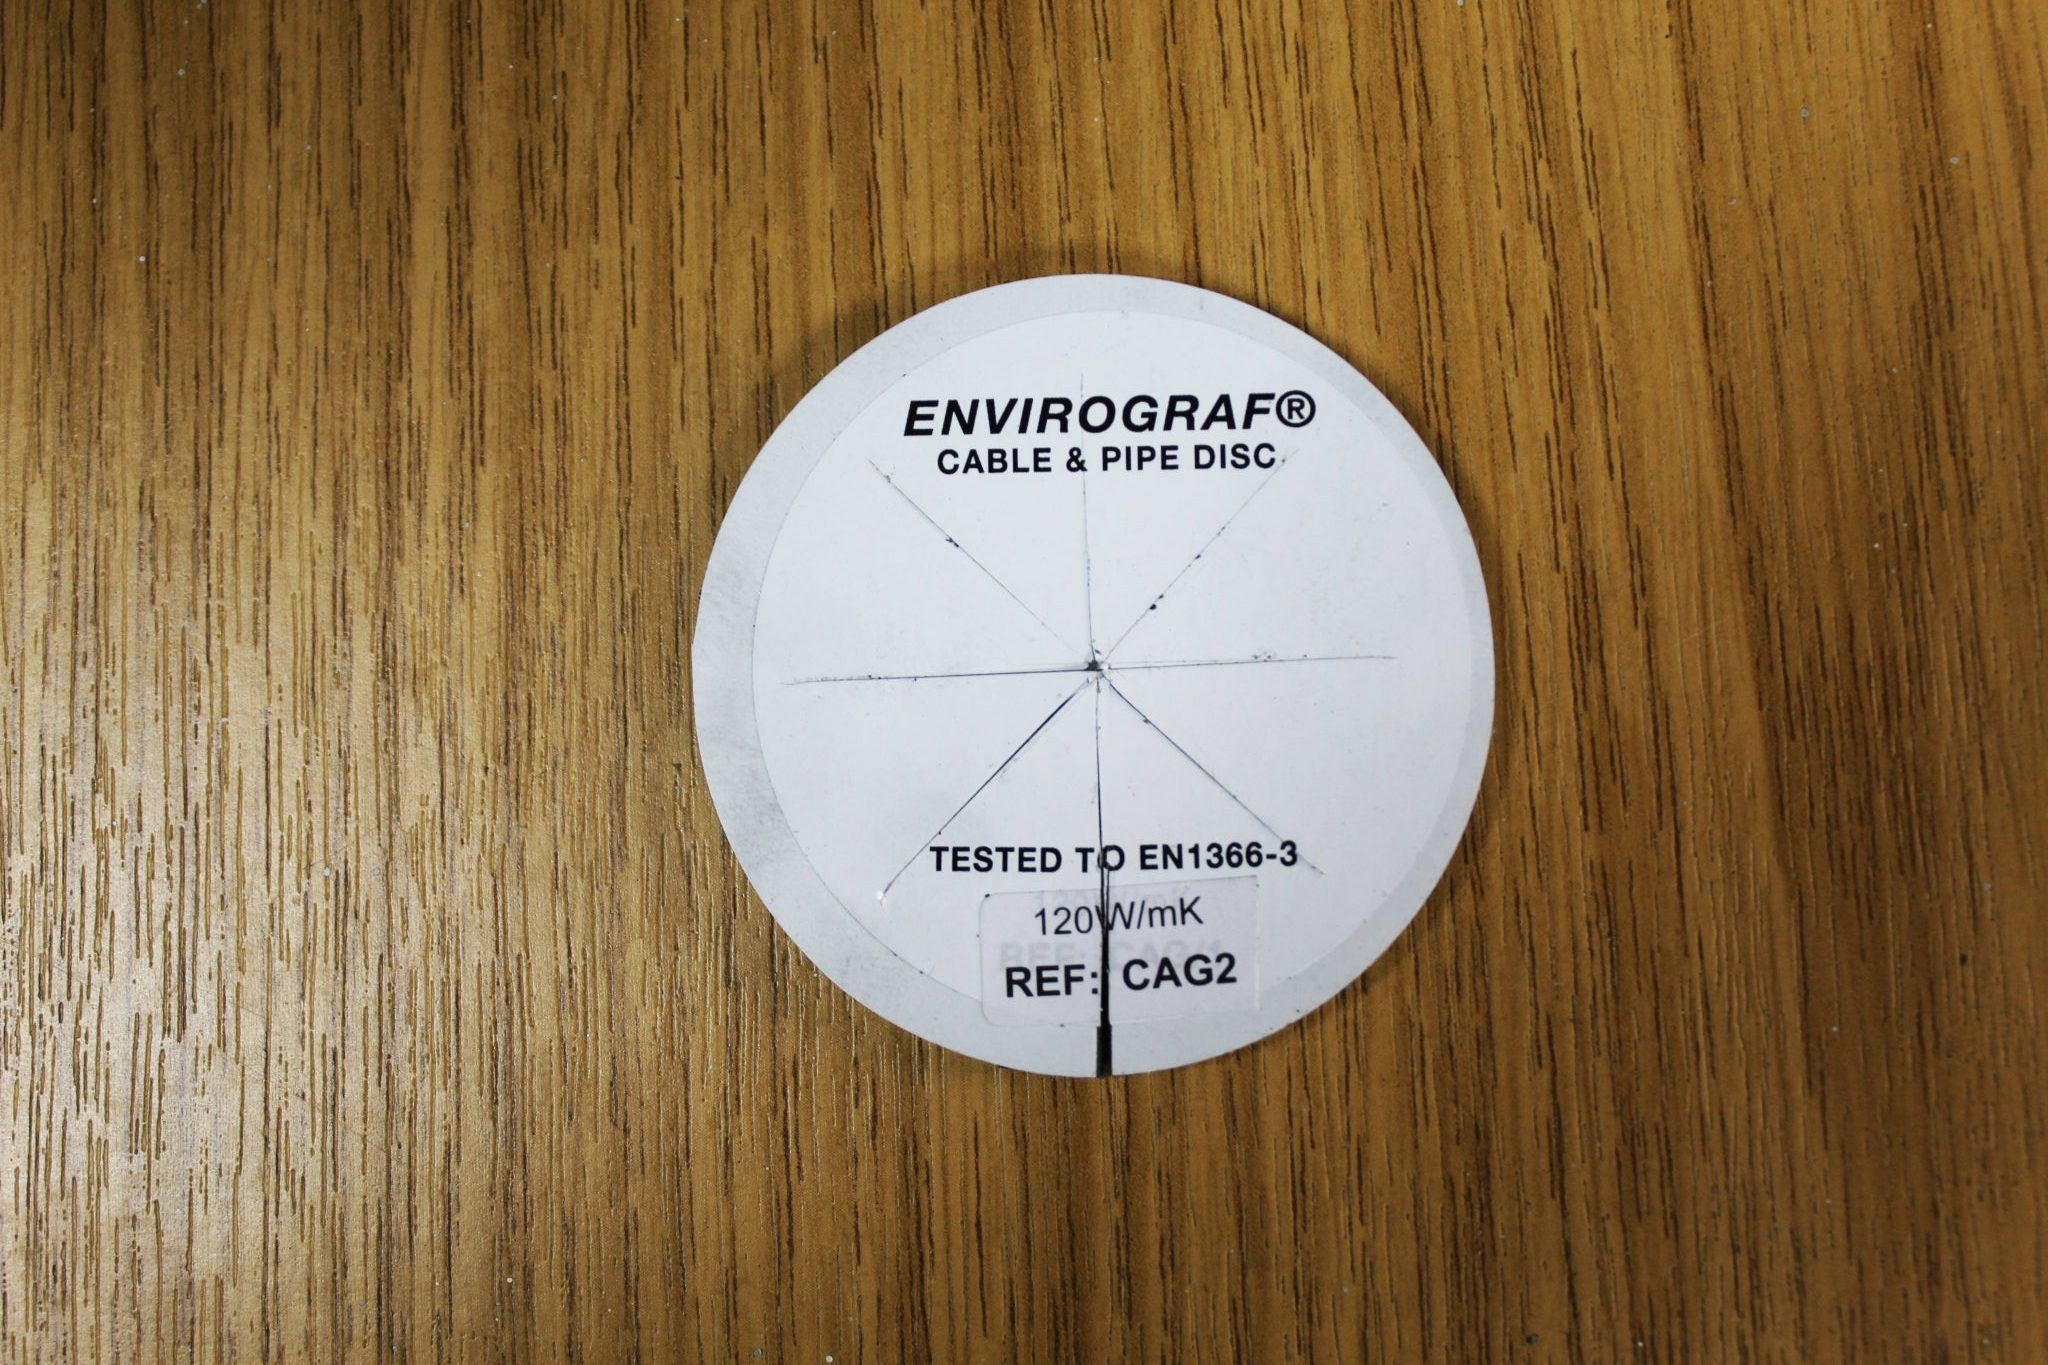 Cable & Pipe intumescent disc - Envirograf